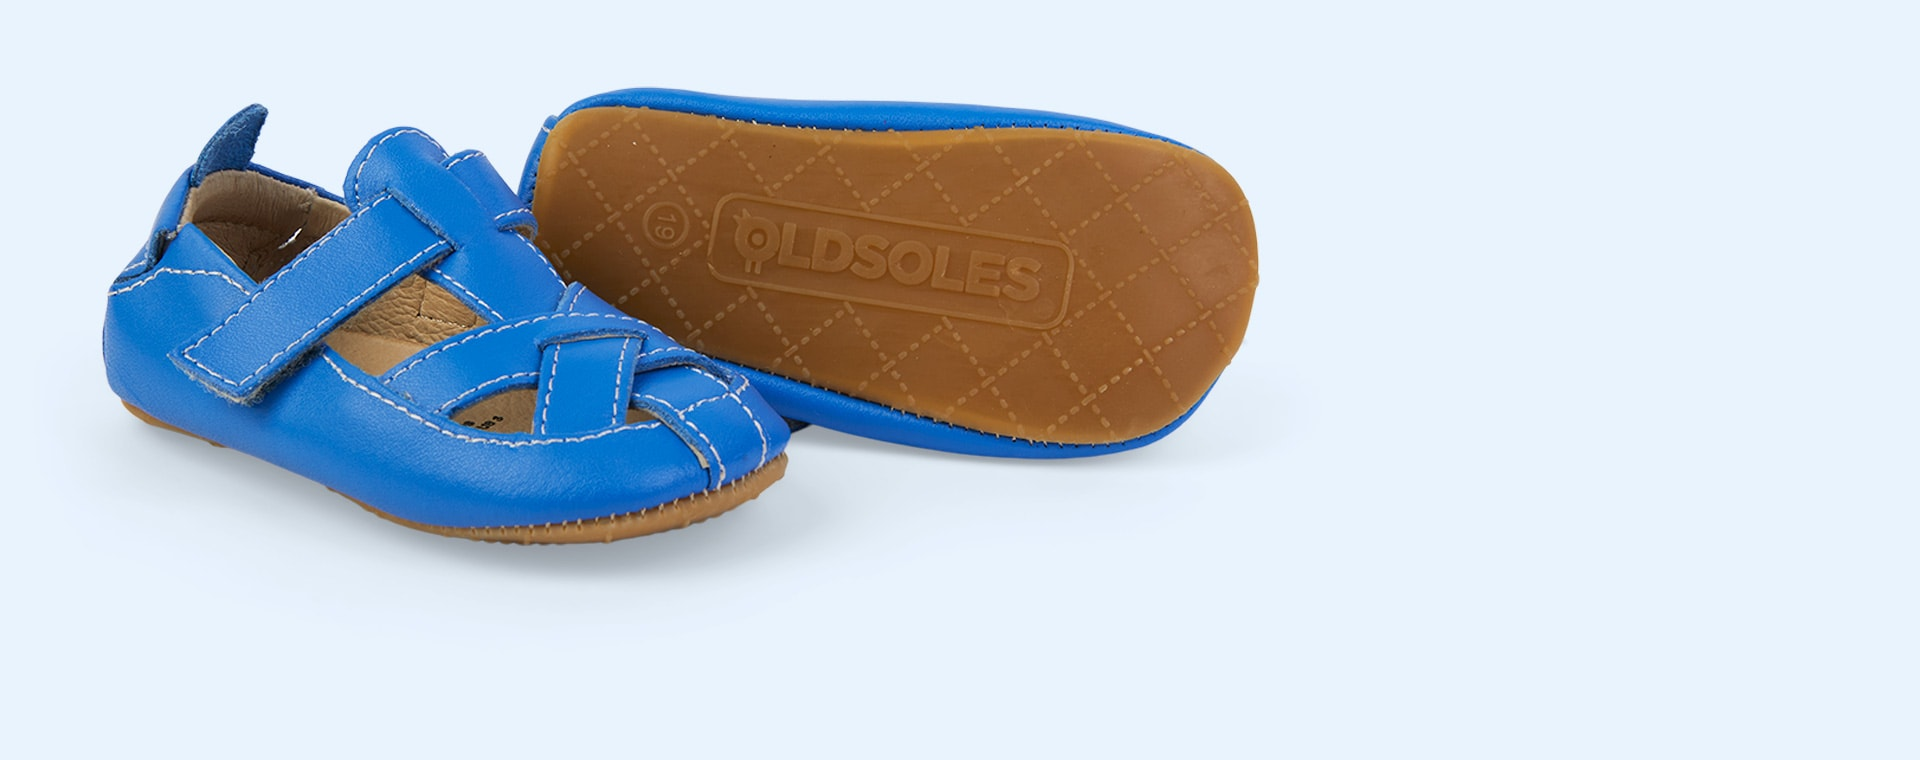 Neon Blue old soles Thread Shoe